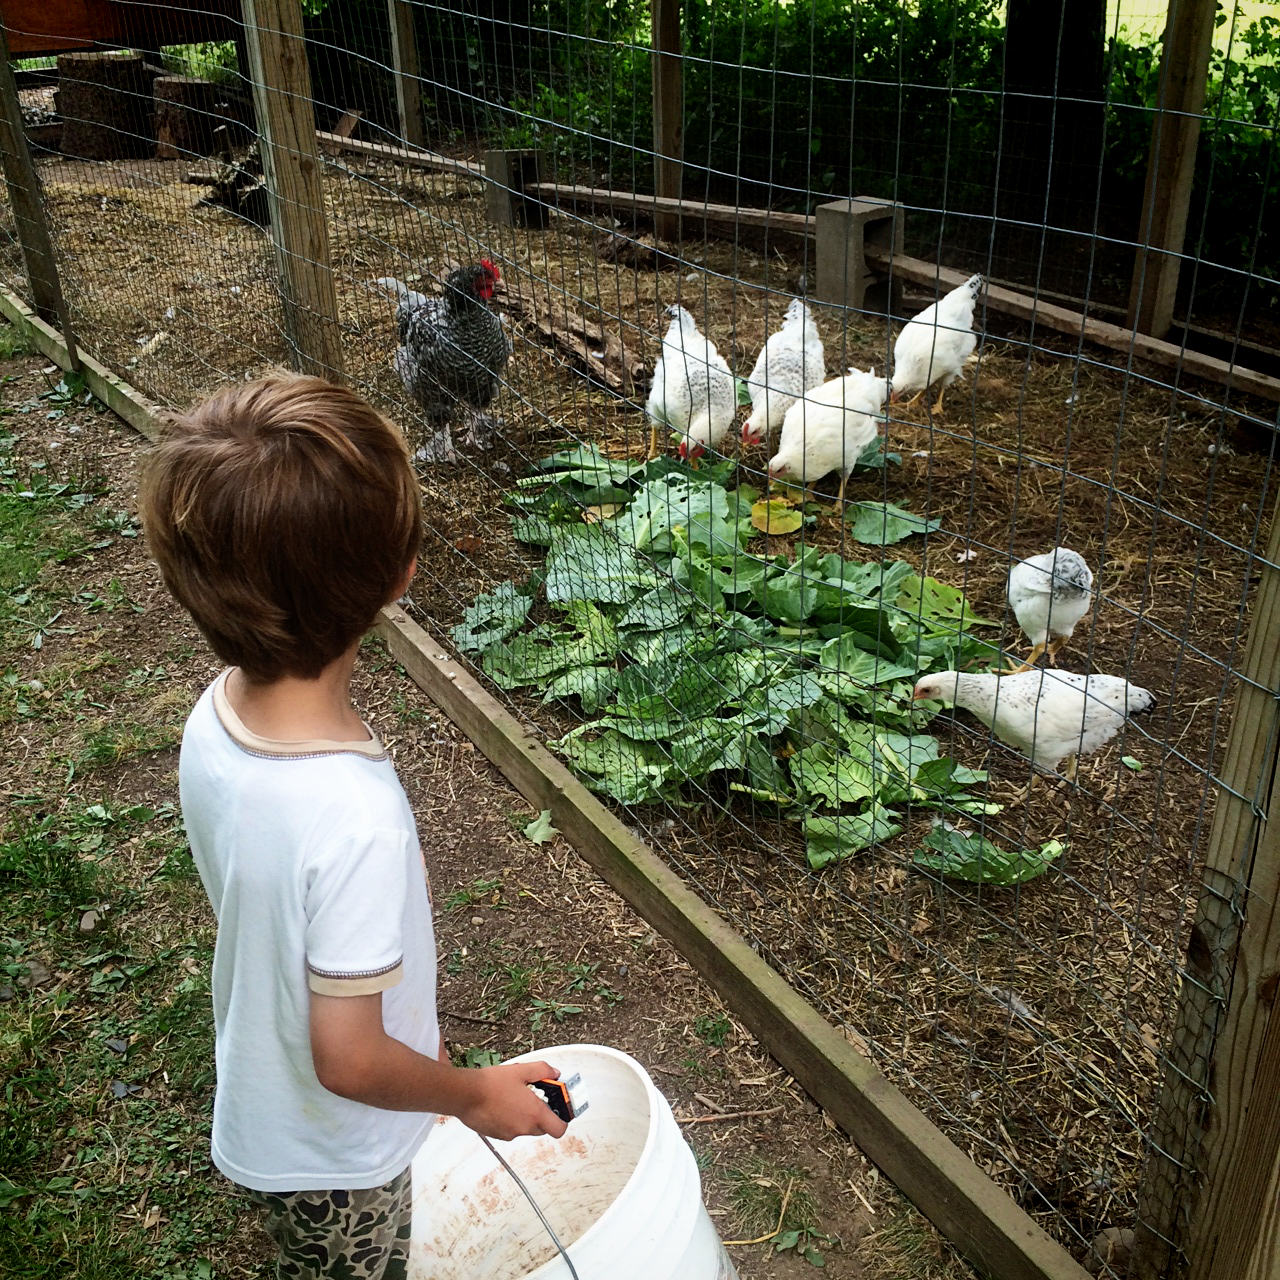 ....and gave them to the chickens.